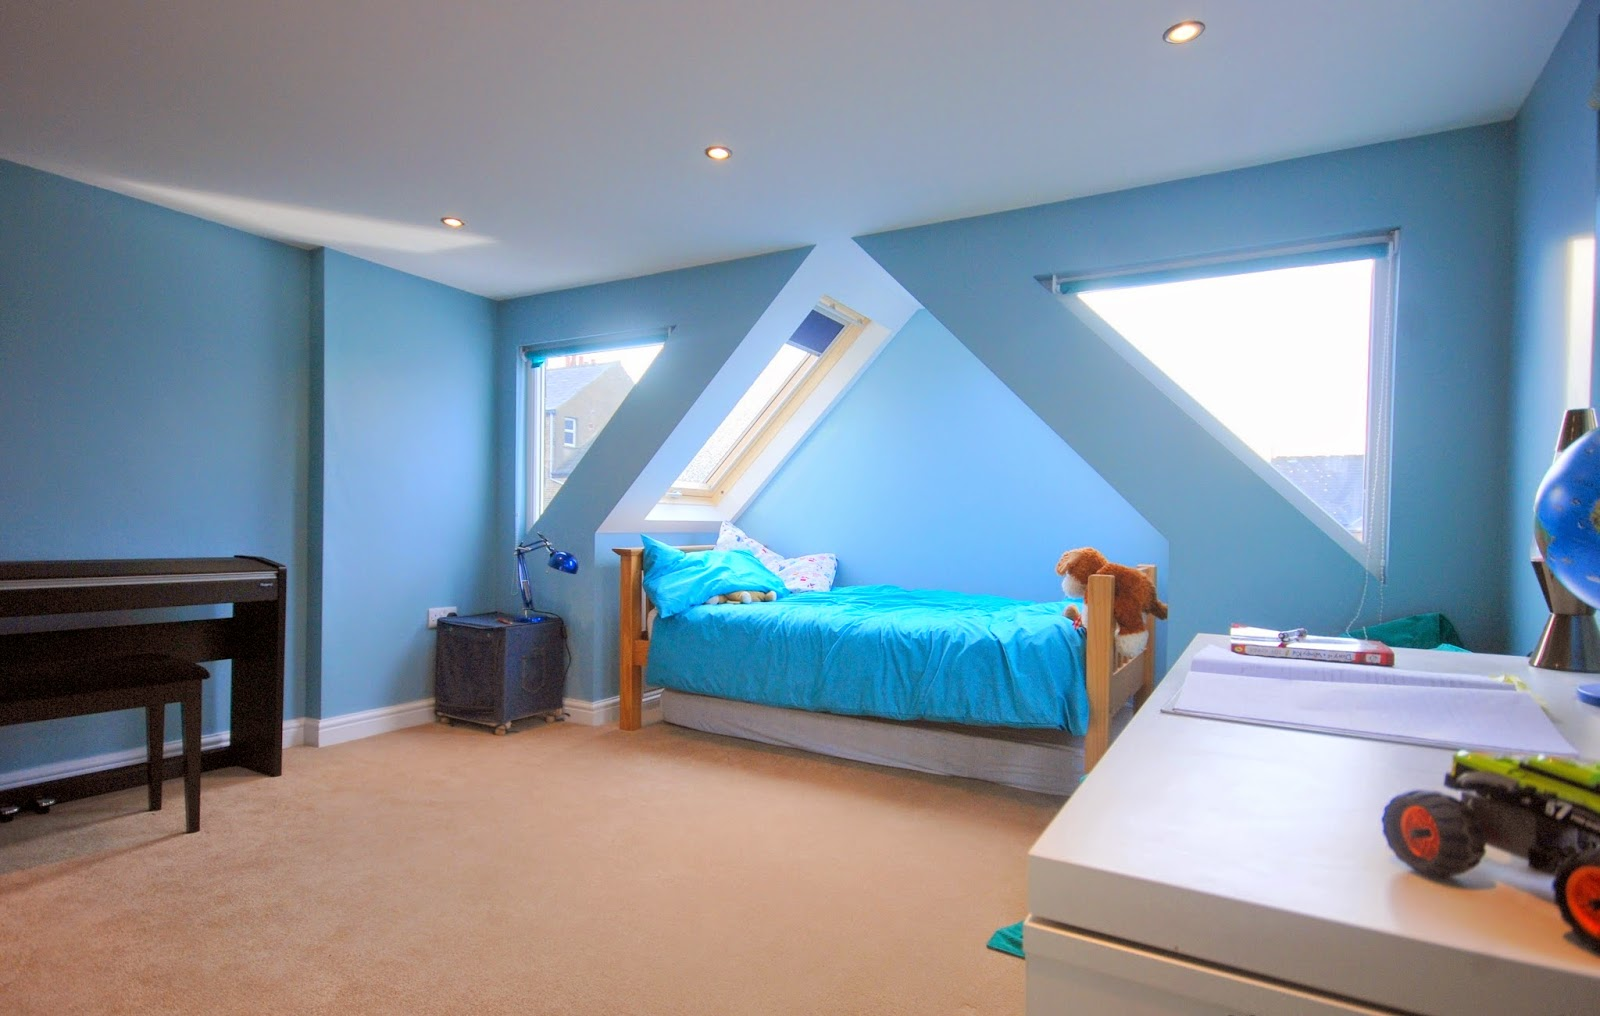 breathtaking loft bedroom conversion ideas | Home Design Wallpaper: Vibrant Transitional Master Bedroom ...